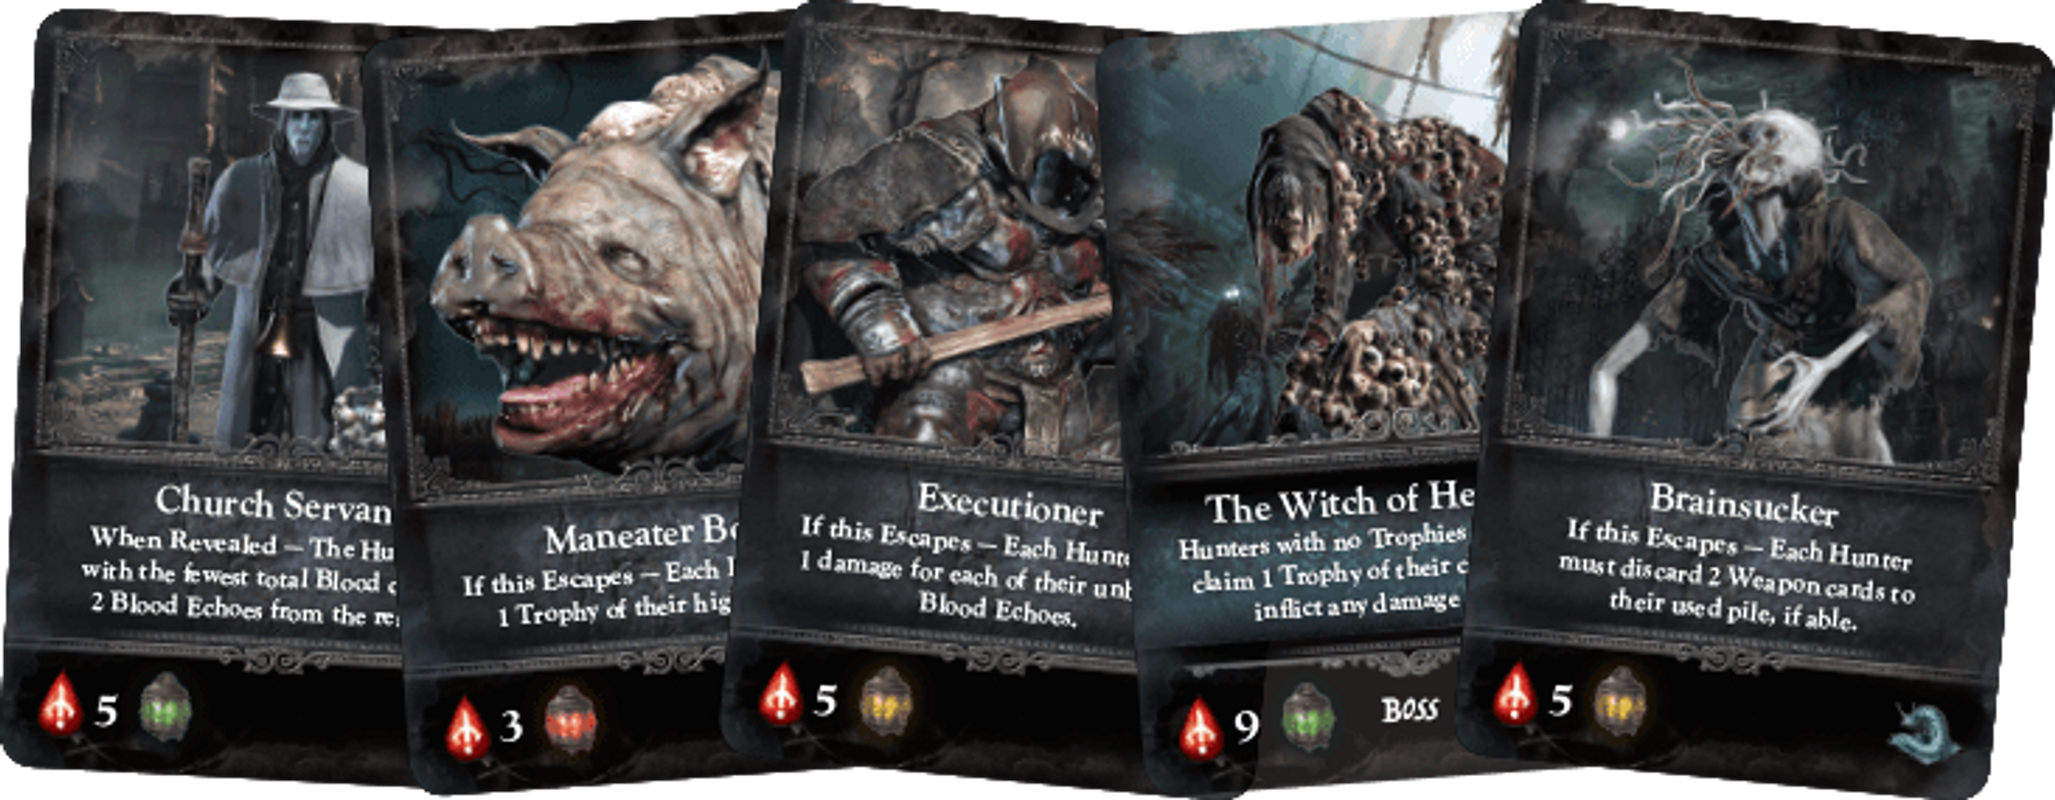 Bloodborne: The Card Game cards